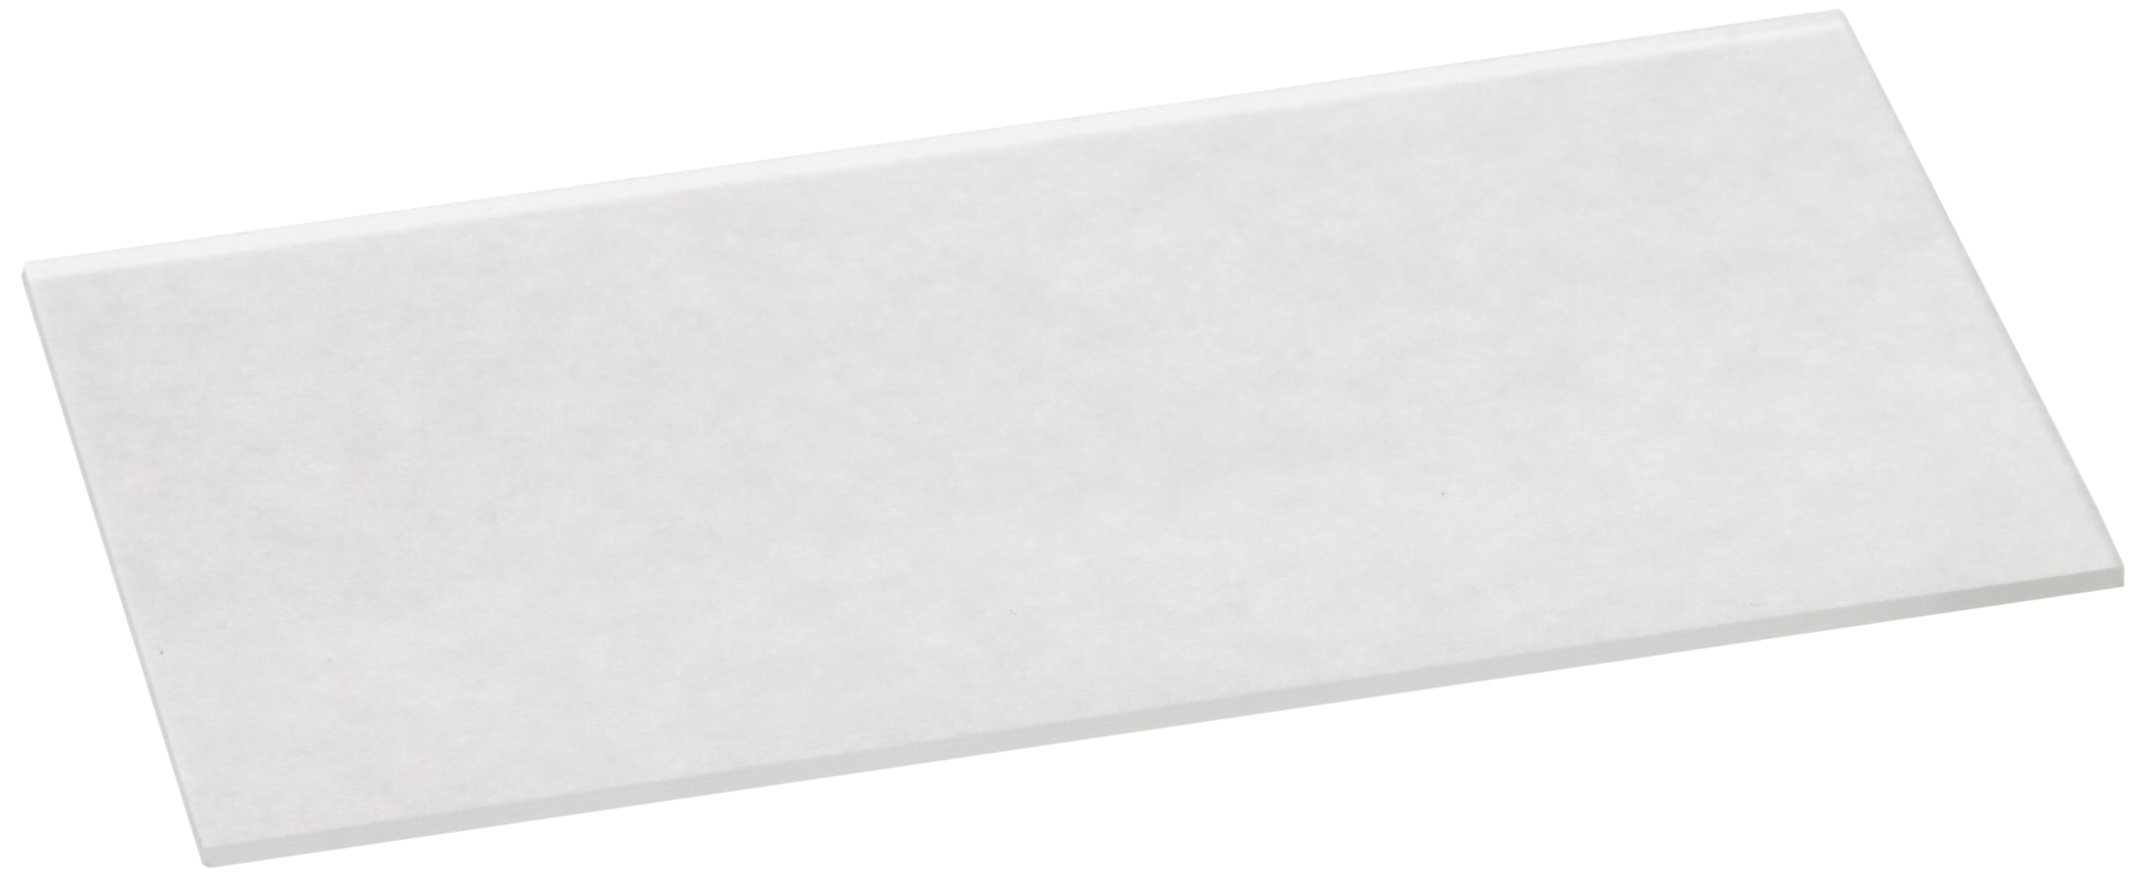 Corning 2947-75X25 Soda Lime Glass Plain Microscope Slide, 75mm Length x 25mm Width x 0.90-1.10mm Thick (20 Boxes of Approx. 72 each)